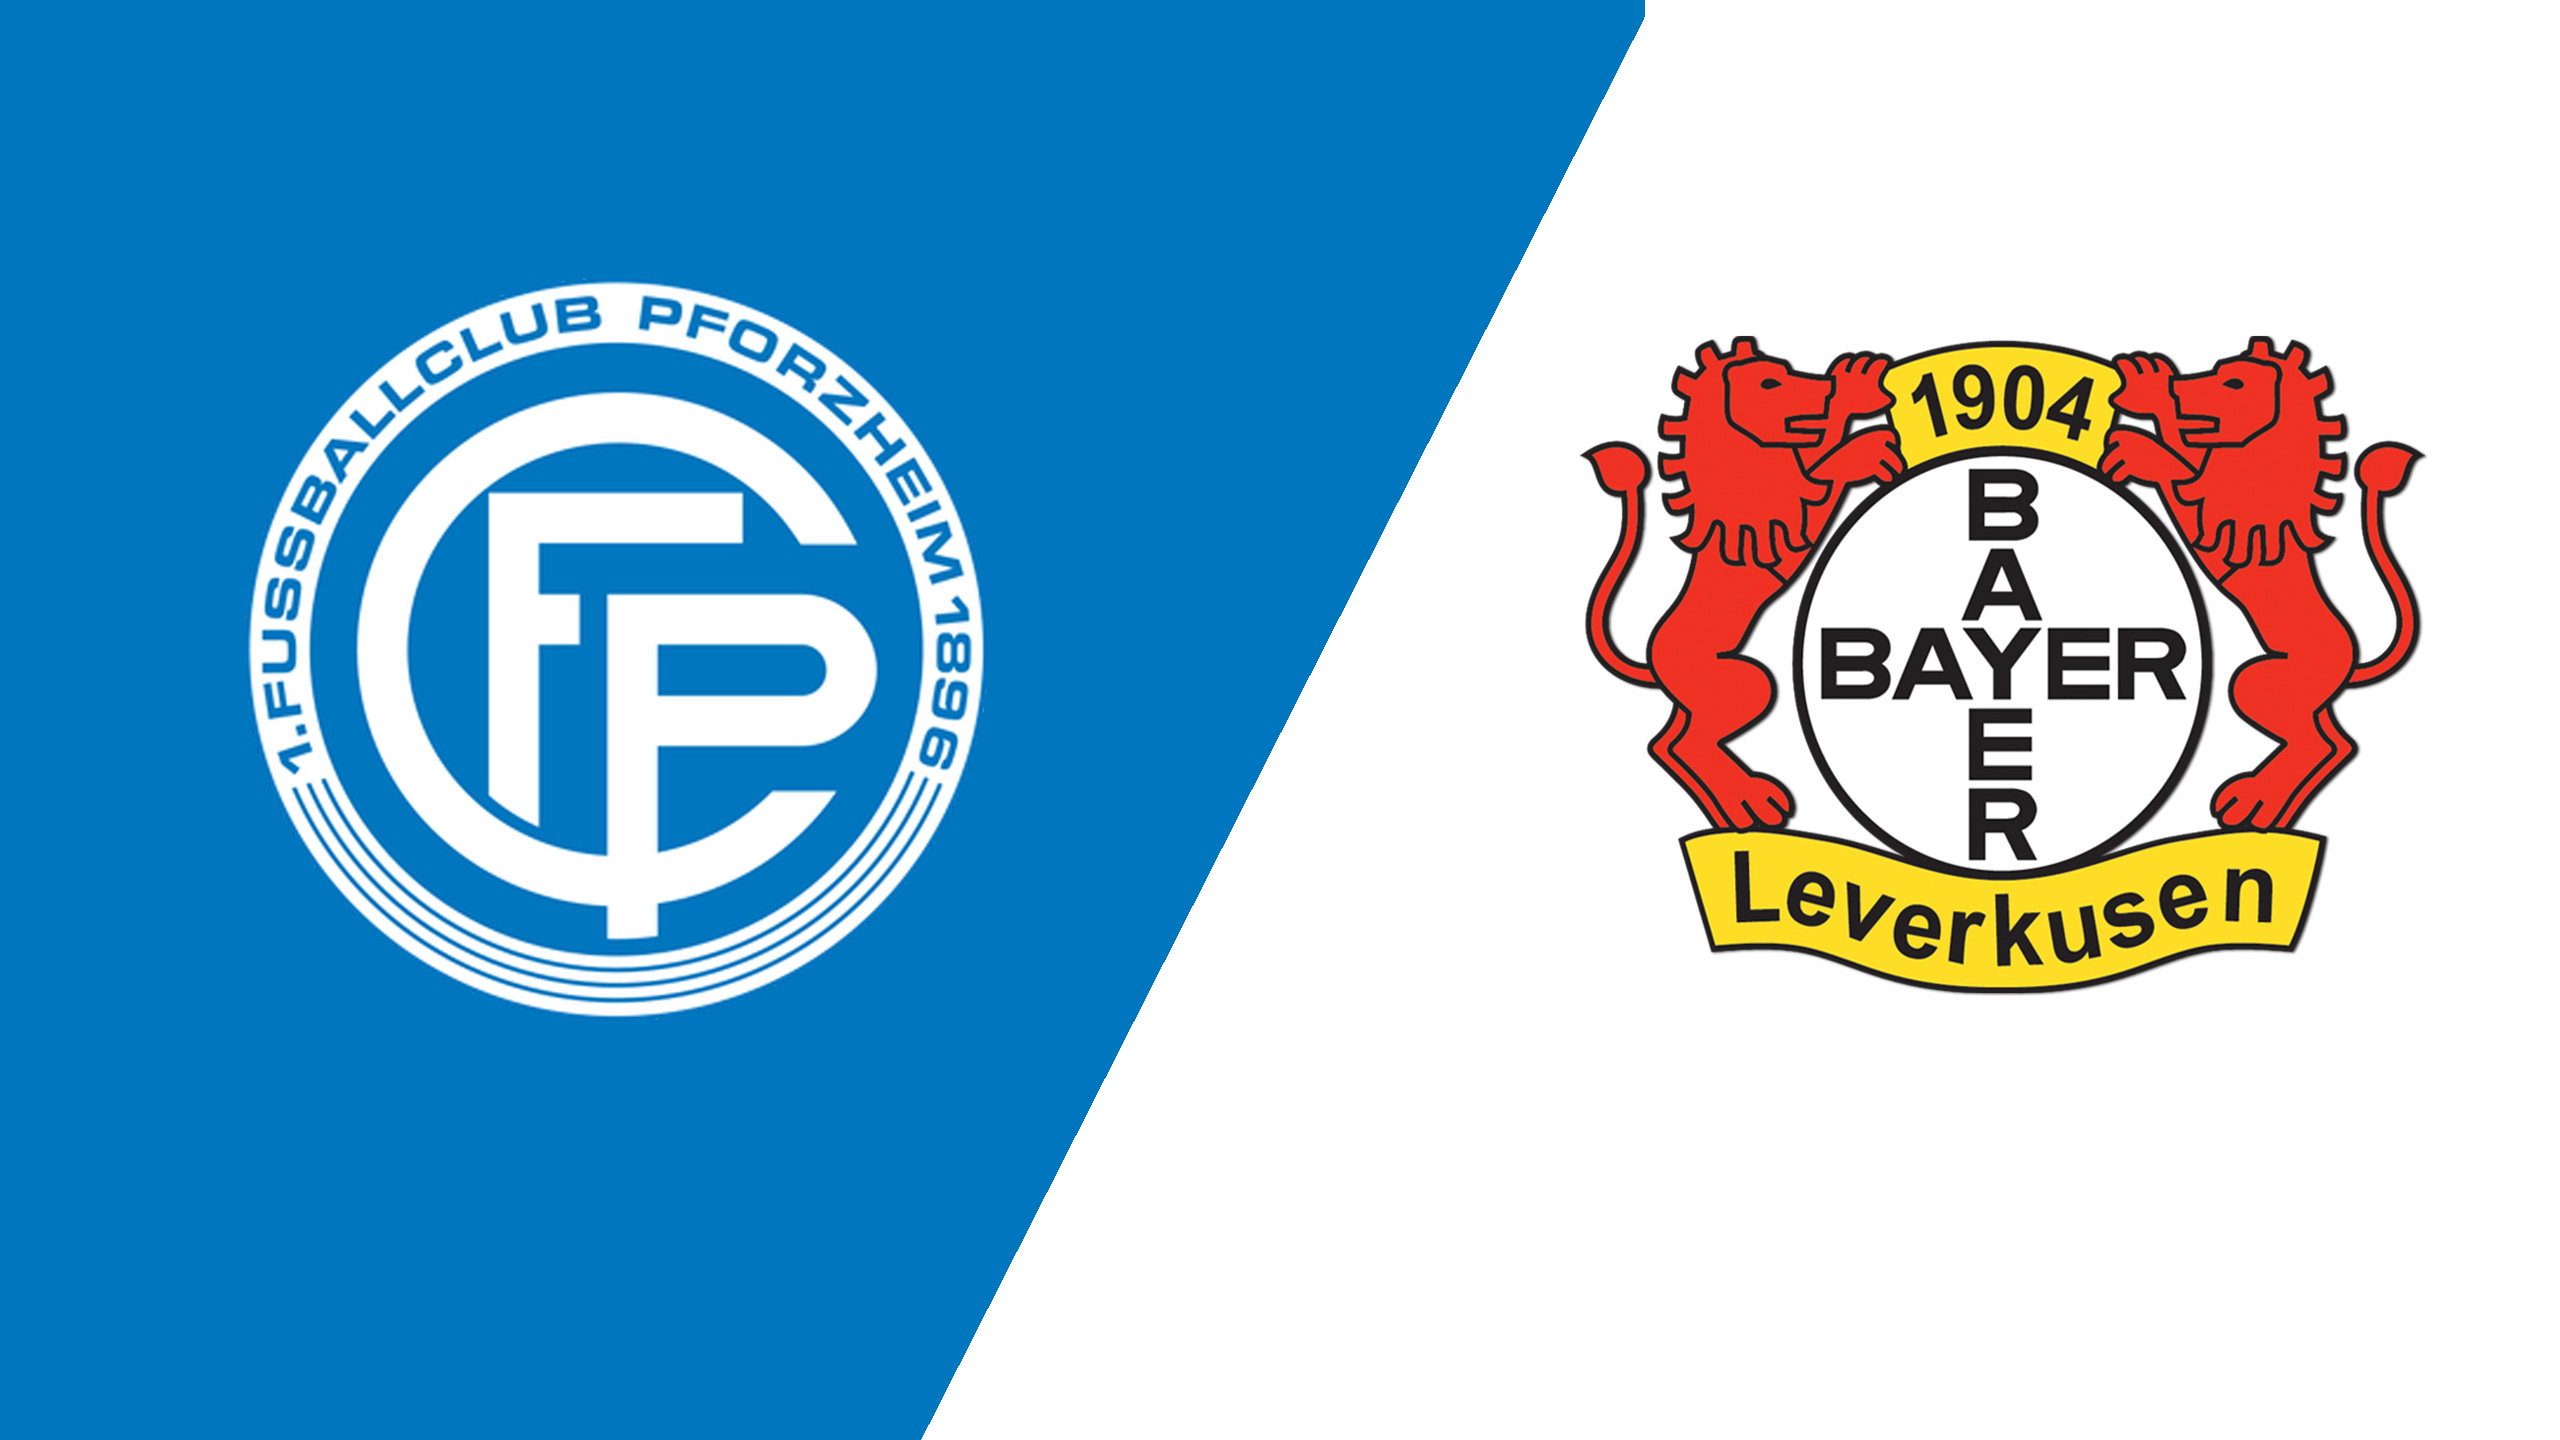 Pforzheim vs. Bayer Leverkusen (Round 1) (German Cup)